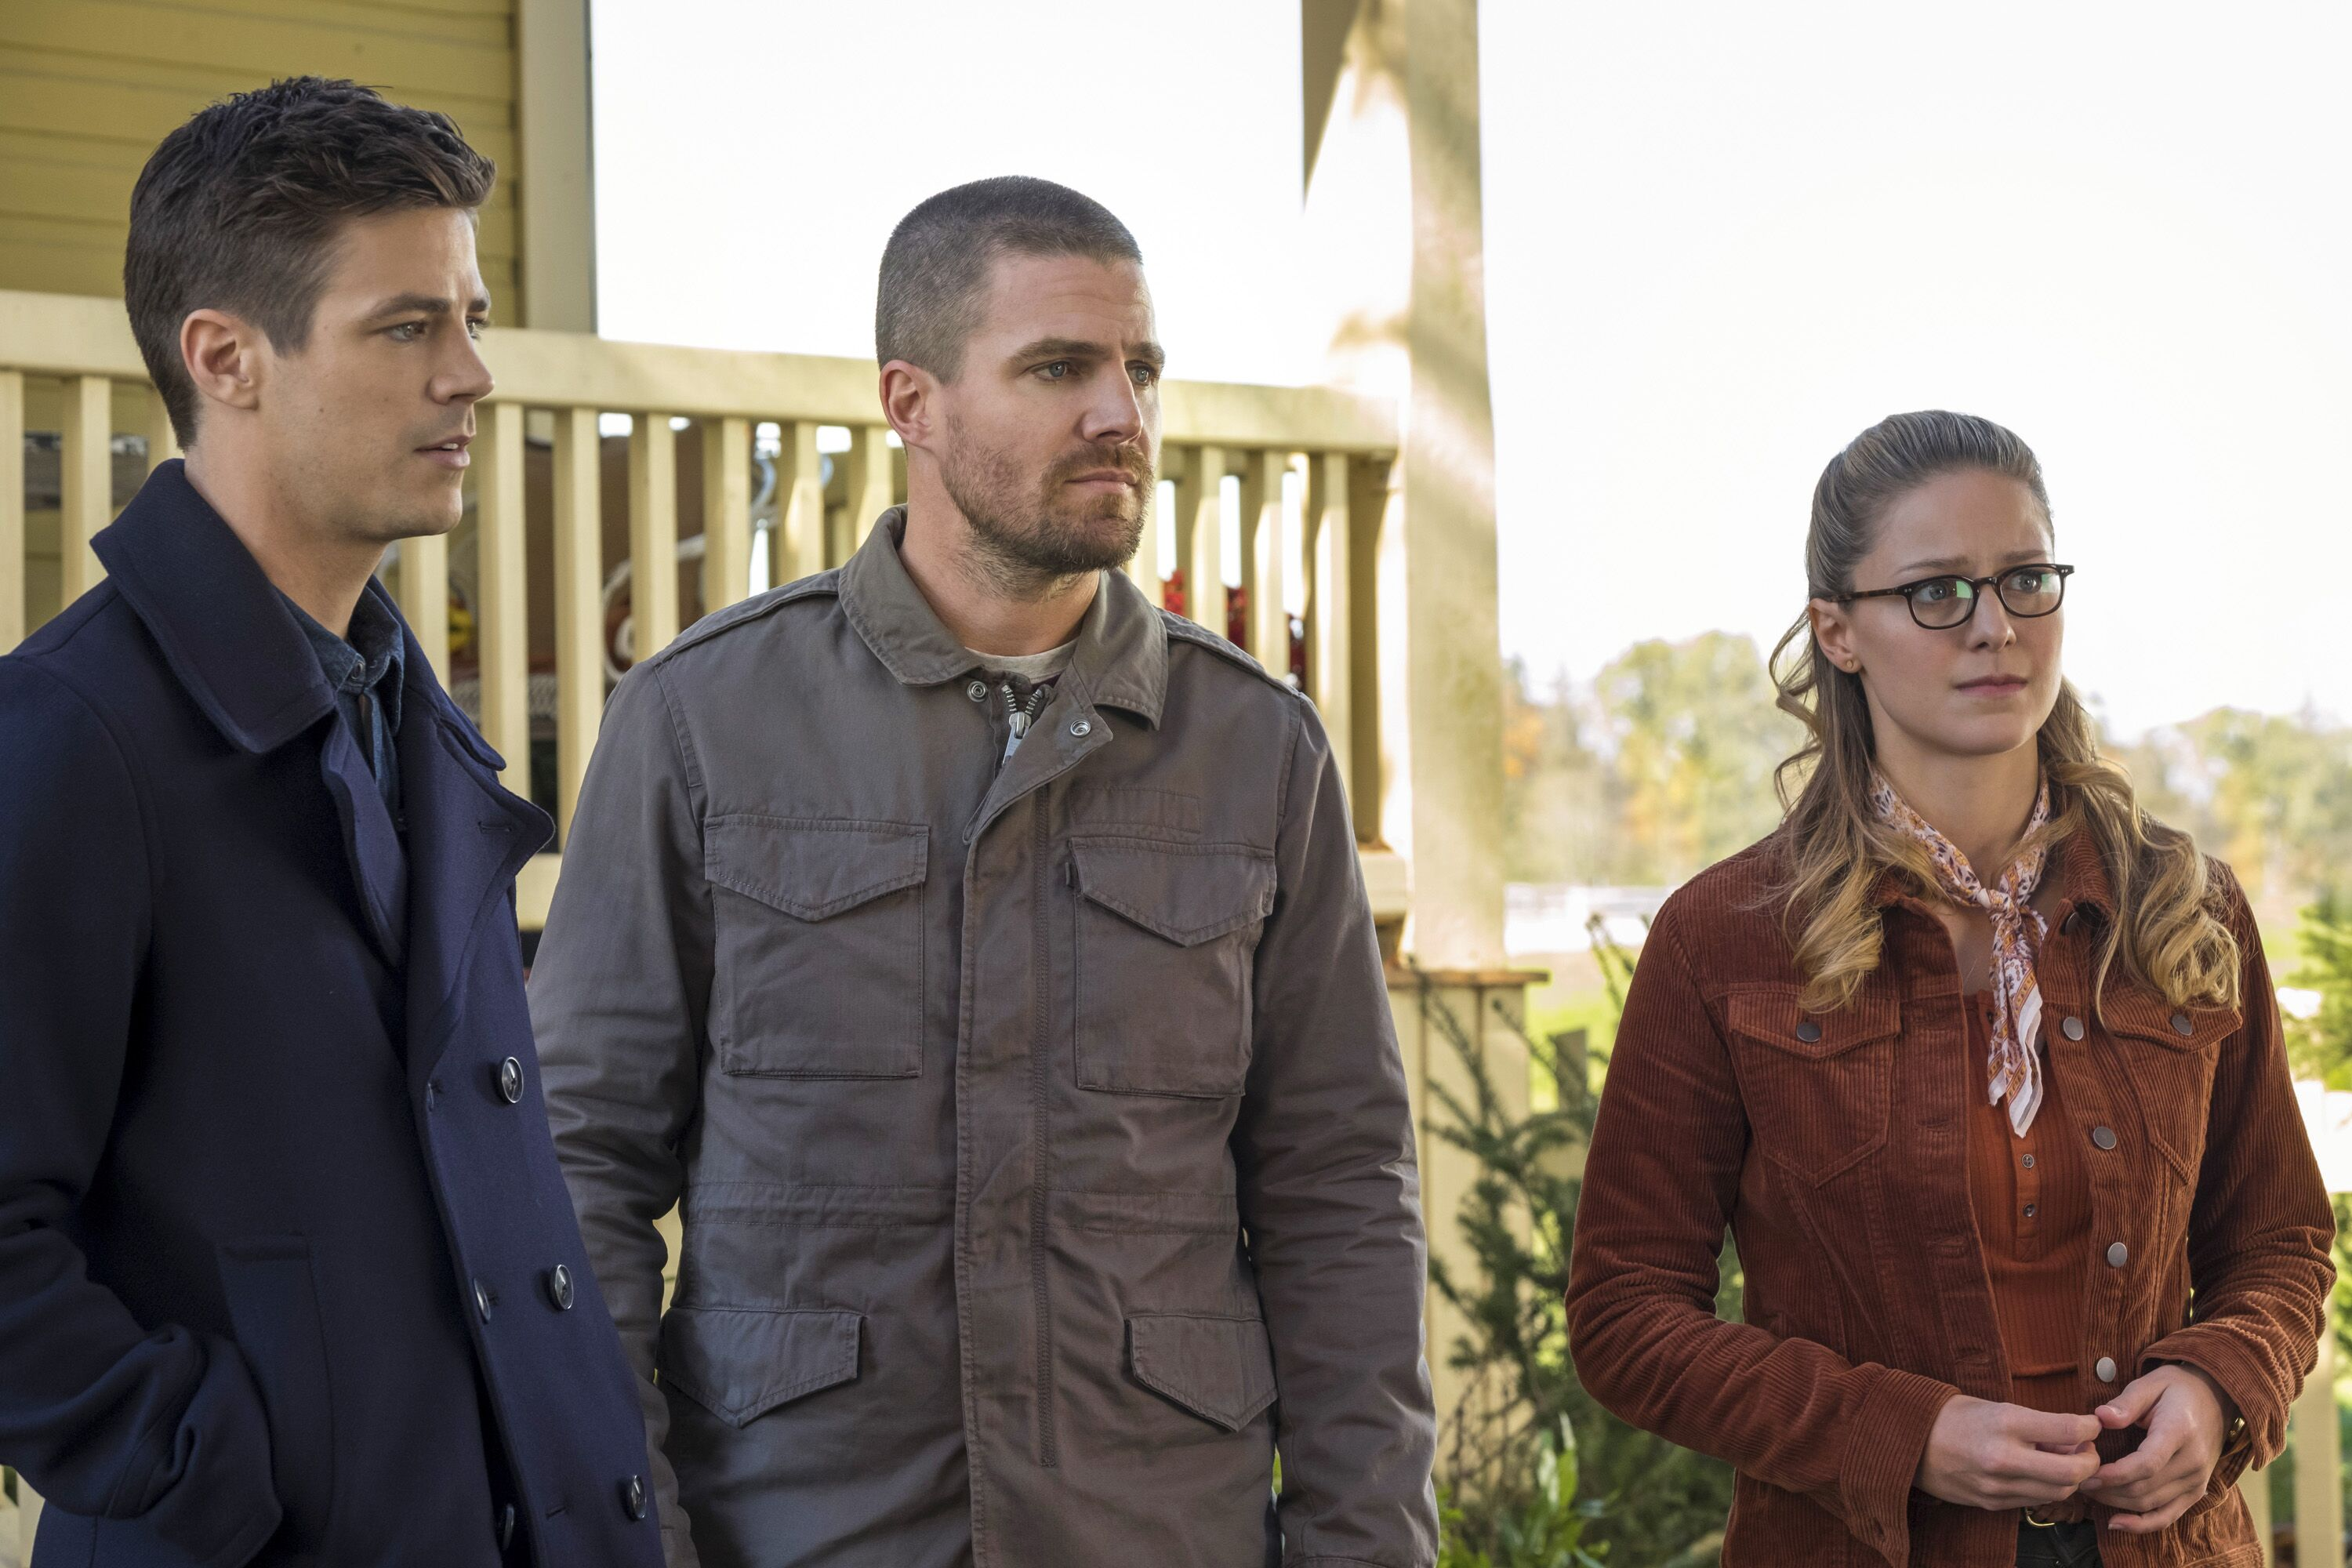 Elseworlds: Crossover will have long-term consequences in